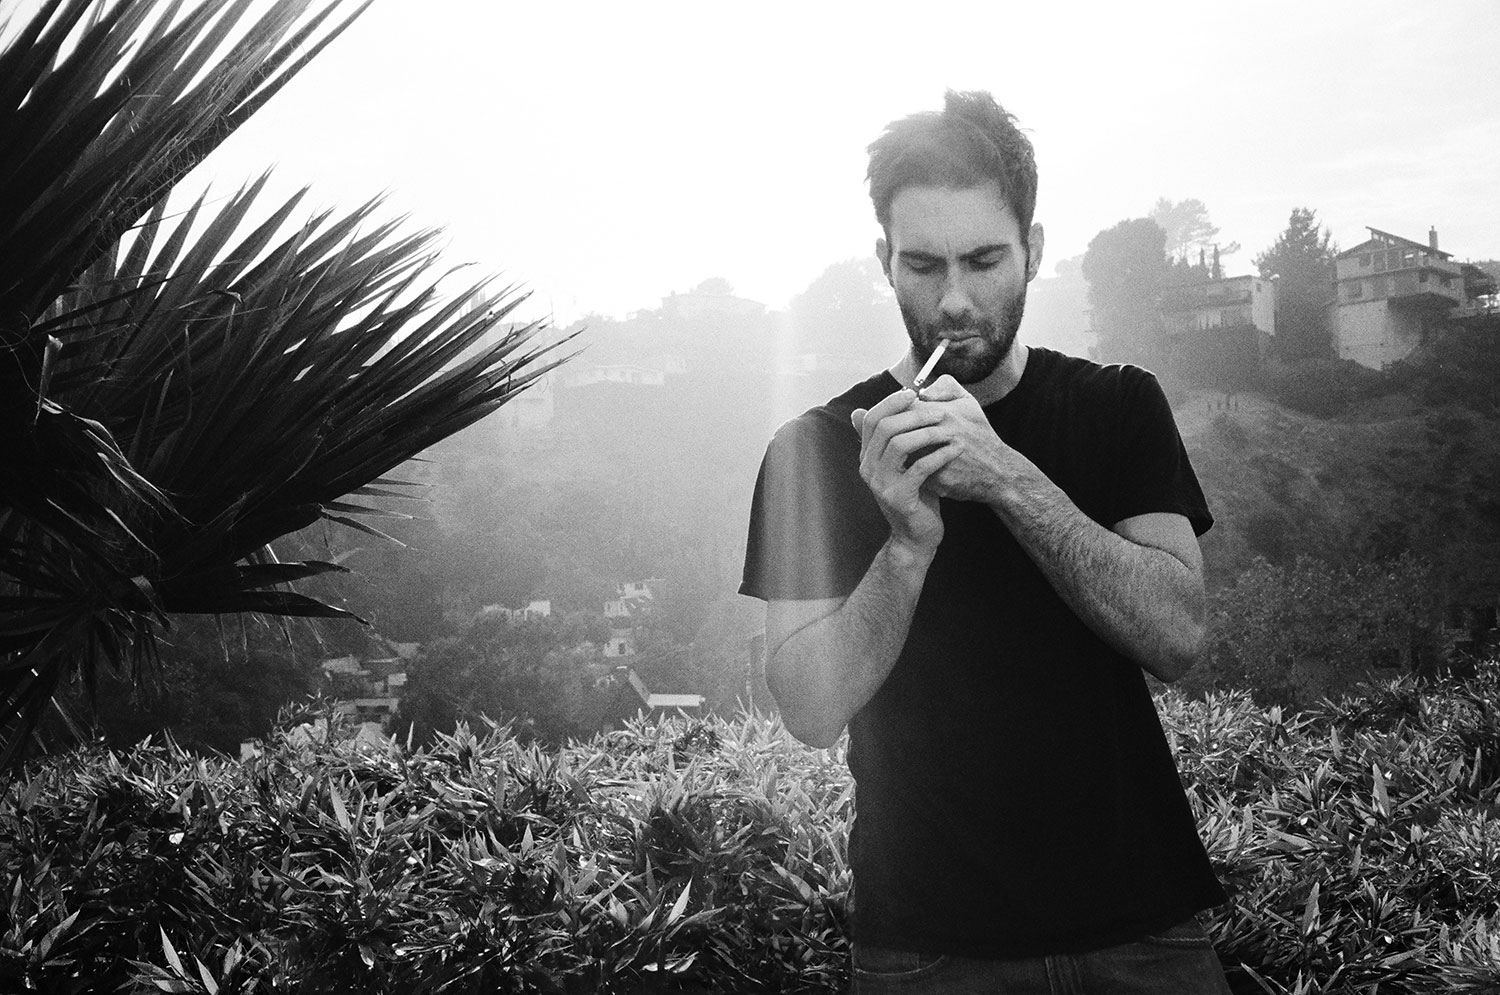 Adam Levine, lead singer of Maroon 5 smoking cigarette on Los Feliz Los Angeles hike by Abbey Druckerin black and white